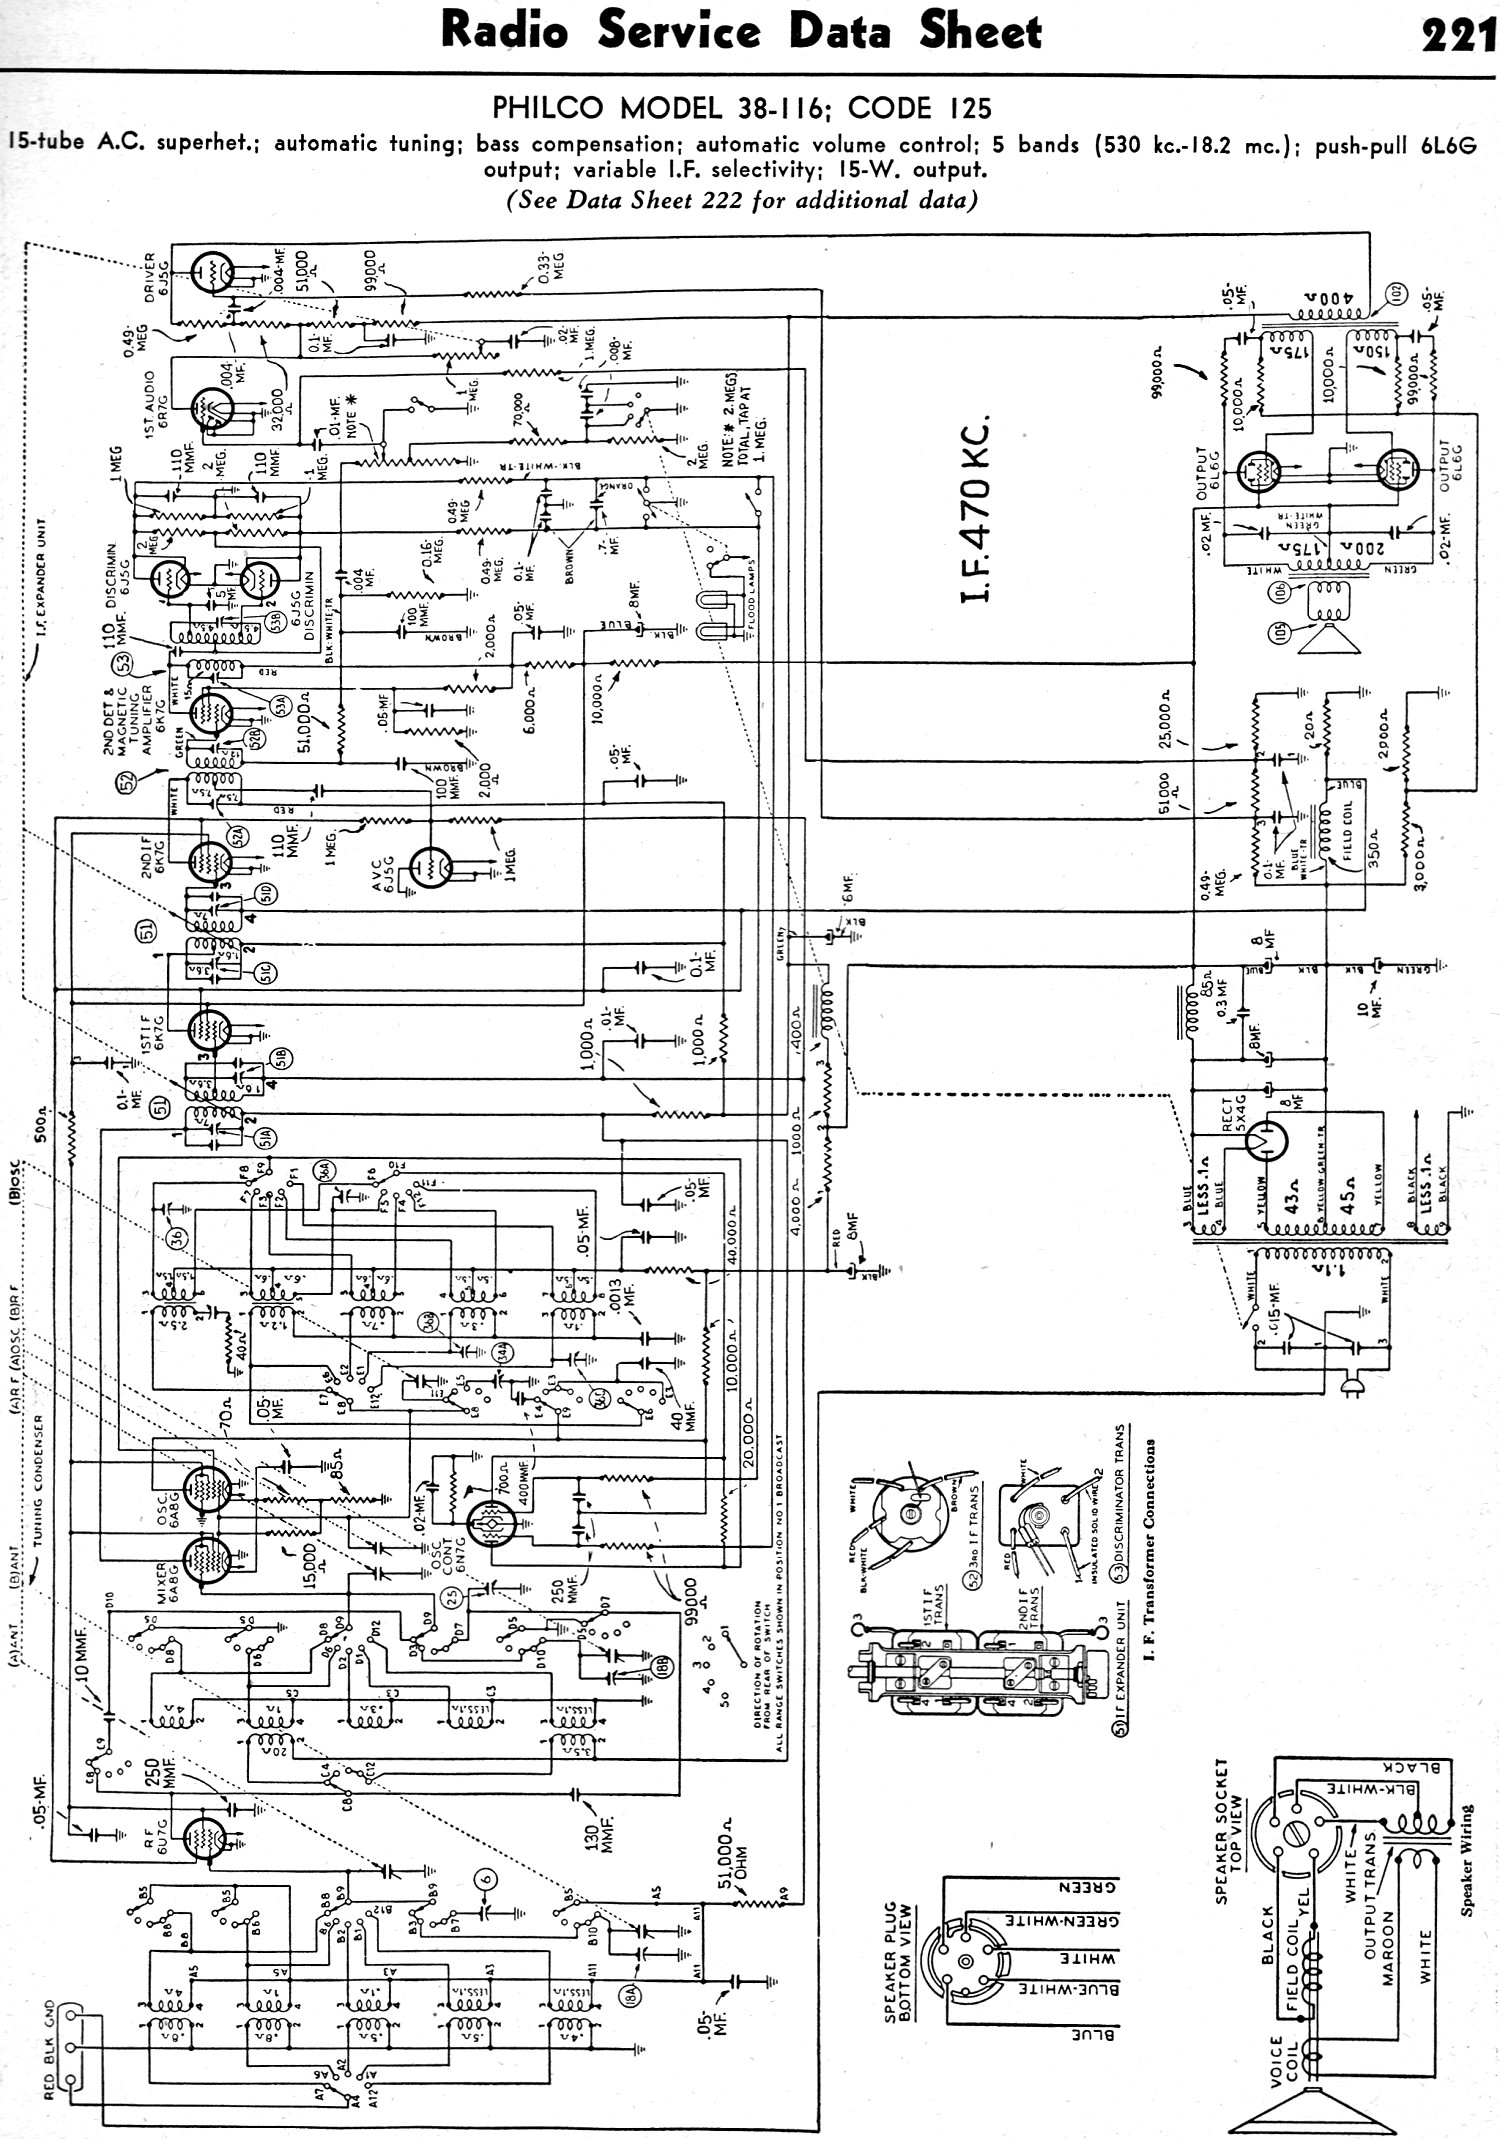 Philco Model 38116 Code 125 February 1938 Radiocraft Rf Cafe. Philco Model 38116 Code 125 February 1938 Radiocraft 221. Wiring. Zenith Tube Radio Schematics 1938 At Scoala.co